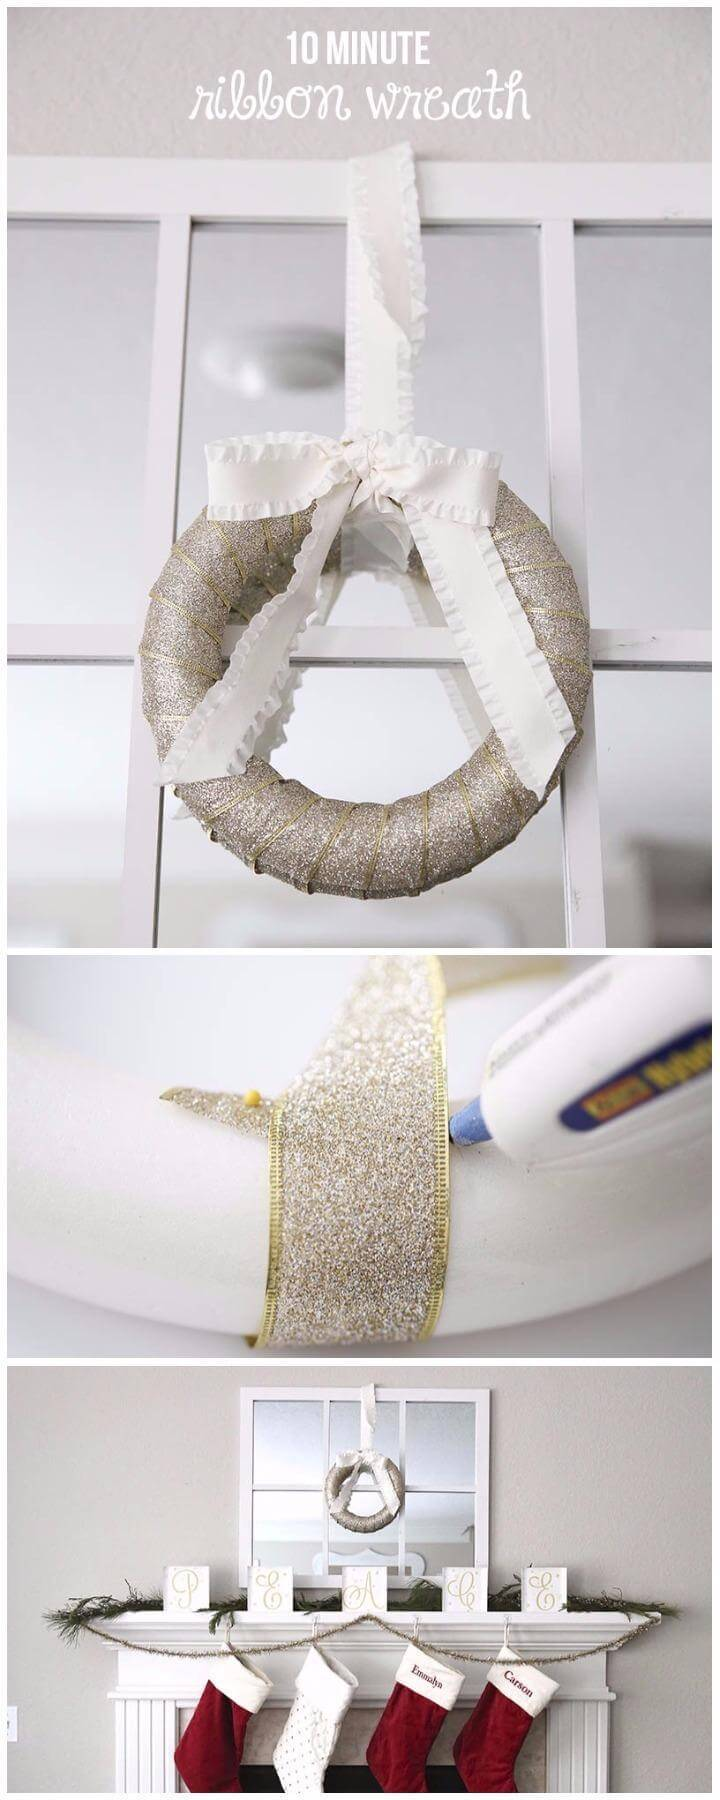 DIY Brilliant 10 Minute Ribbon Wrapped Wreath